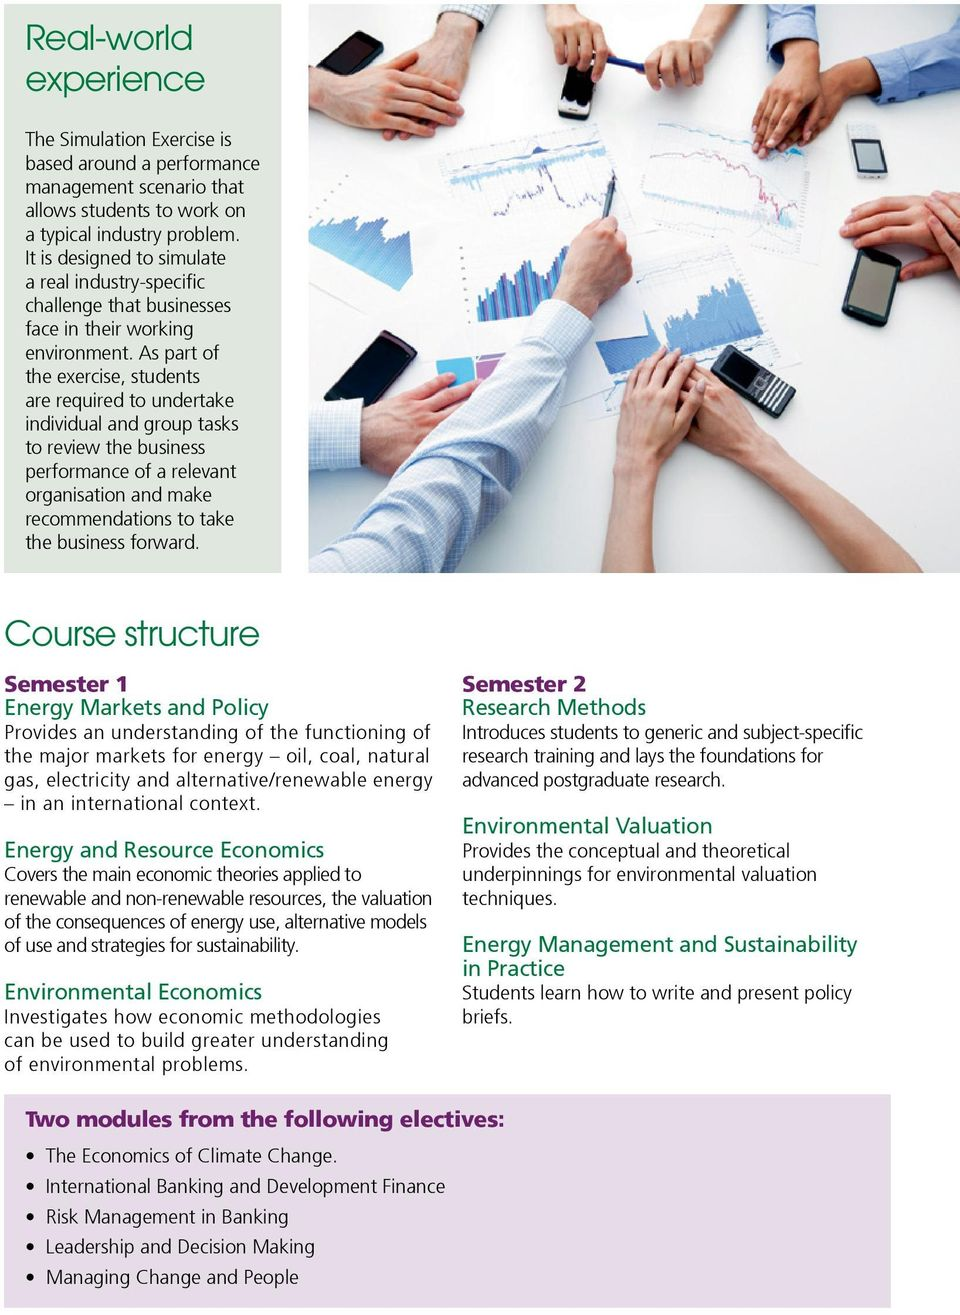 As part of the exercise, students are required to undertake individual and group tasks to review the business performance of a relevant organisation and make recommendations to take the business